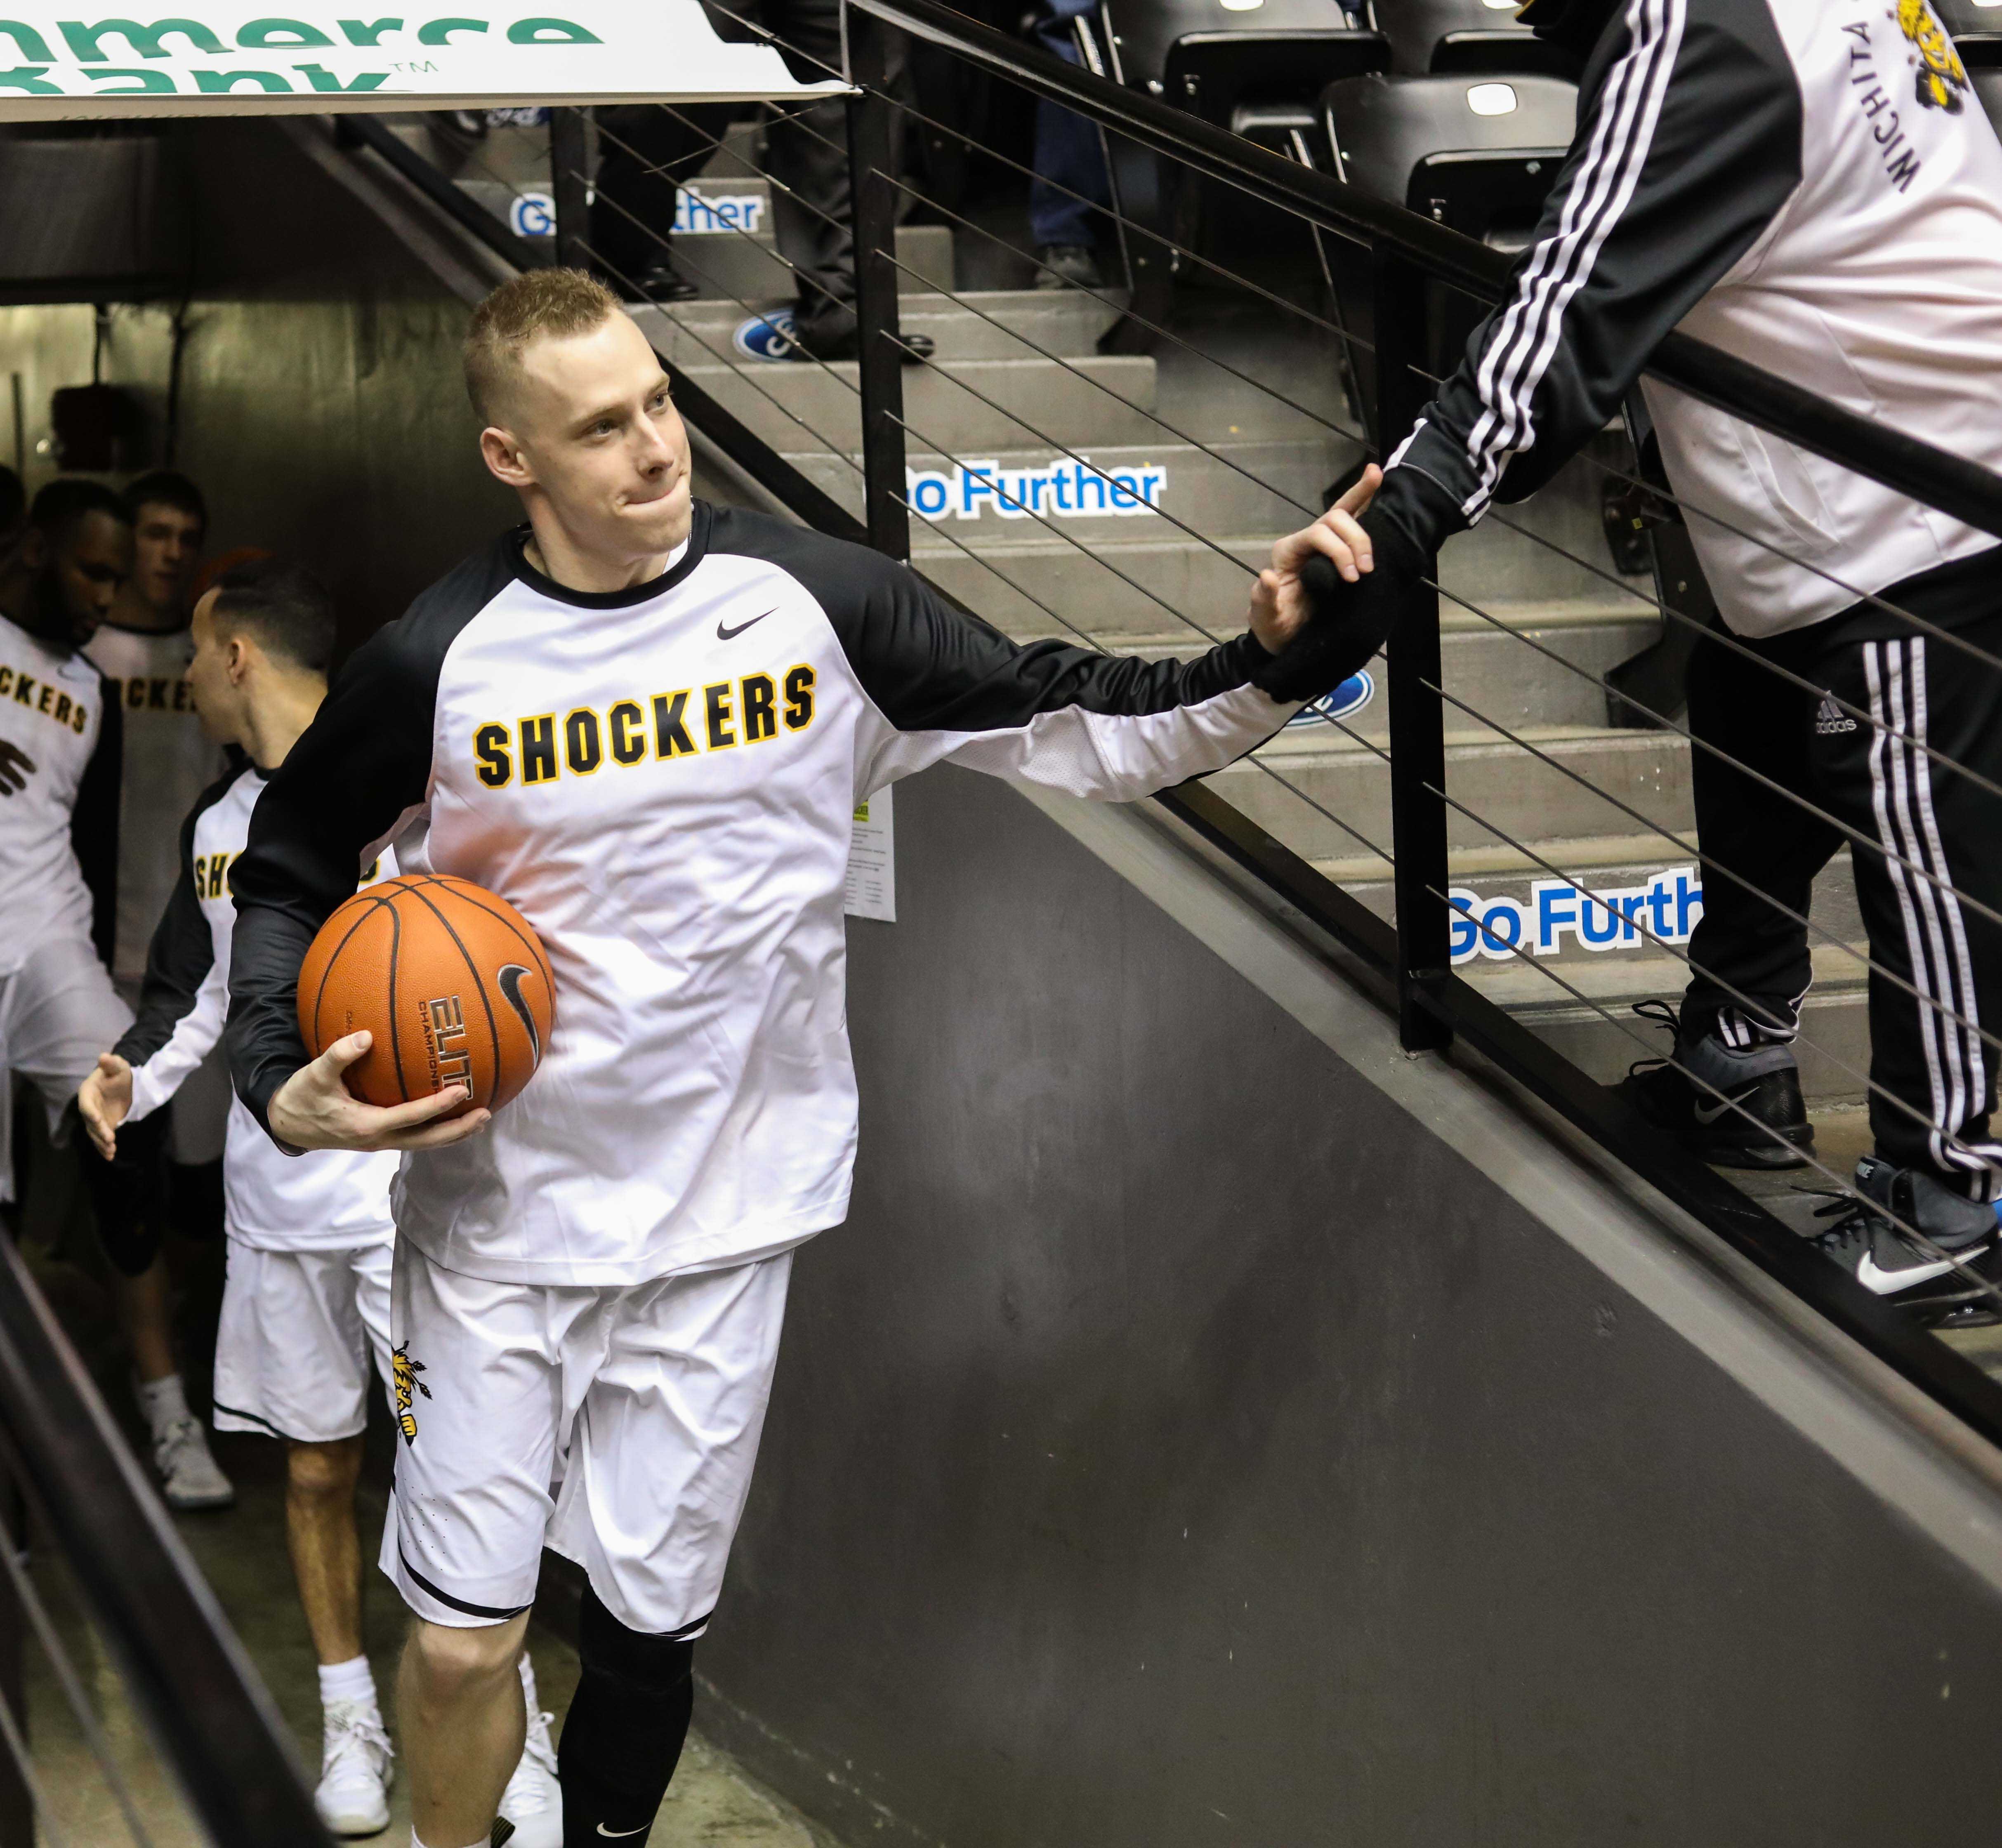 Wichita State guard Zach Bush (5) greets a fan as he leave the tunnel before Thursday's game. (Feb. 9, 2017)